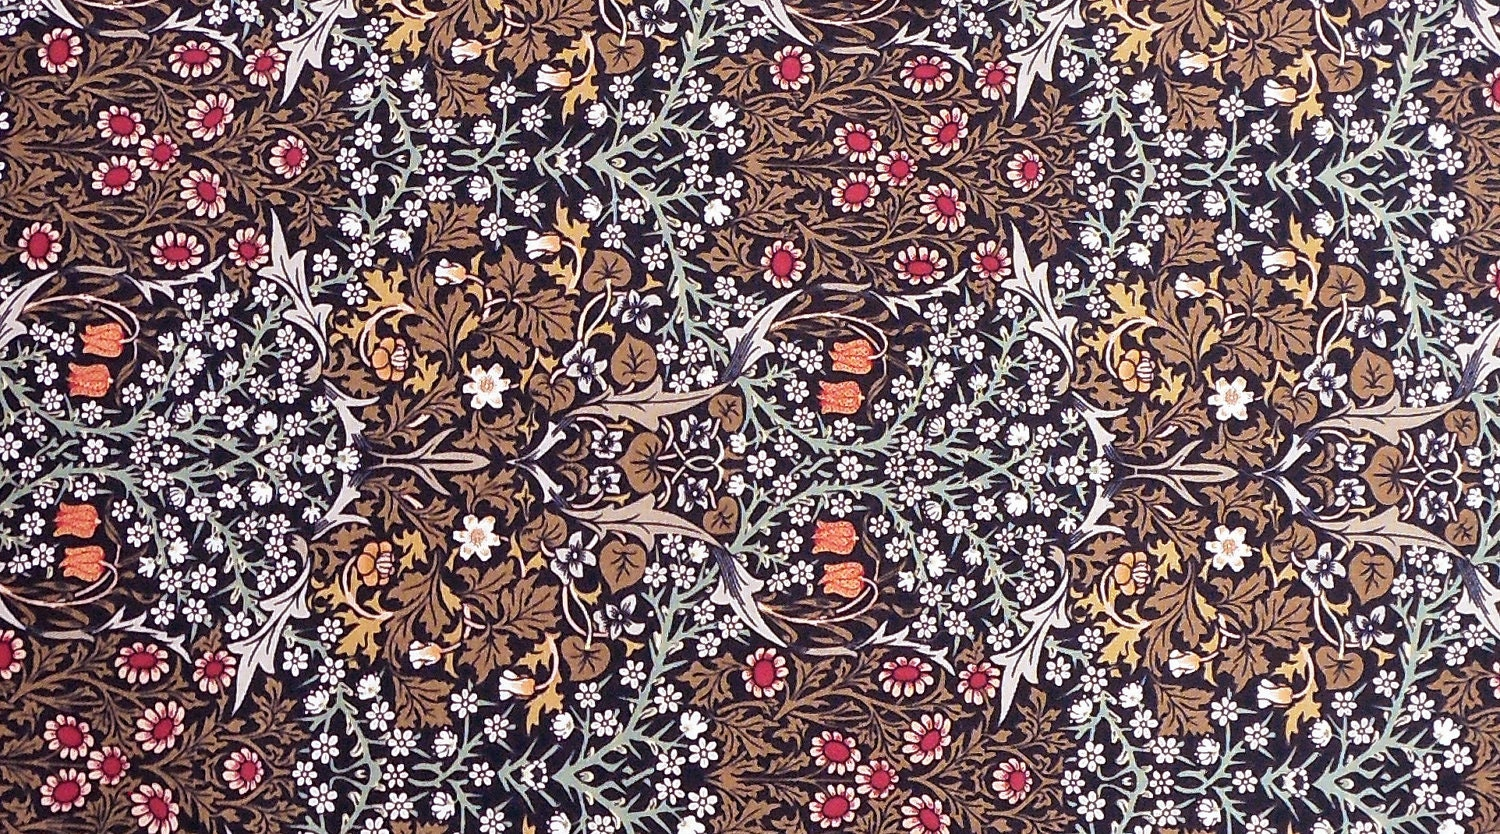 William morris wallpapers and fruit on pinterest for Arts and crafts movement graphic design